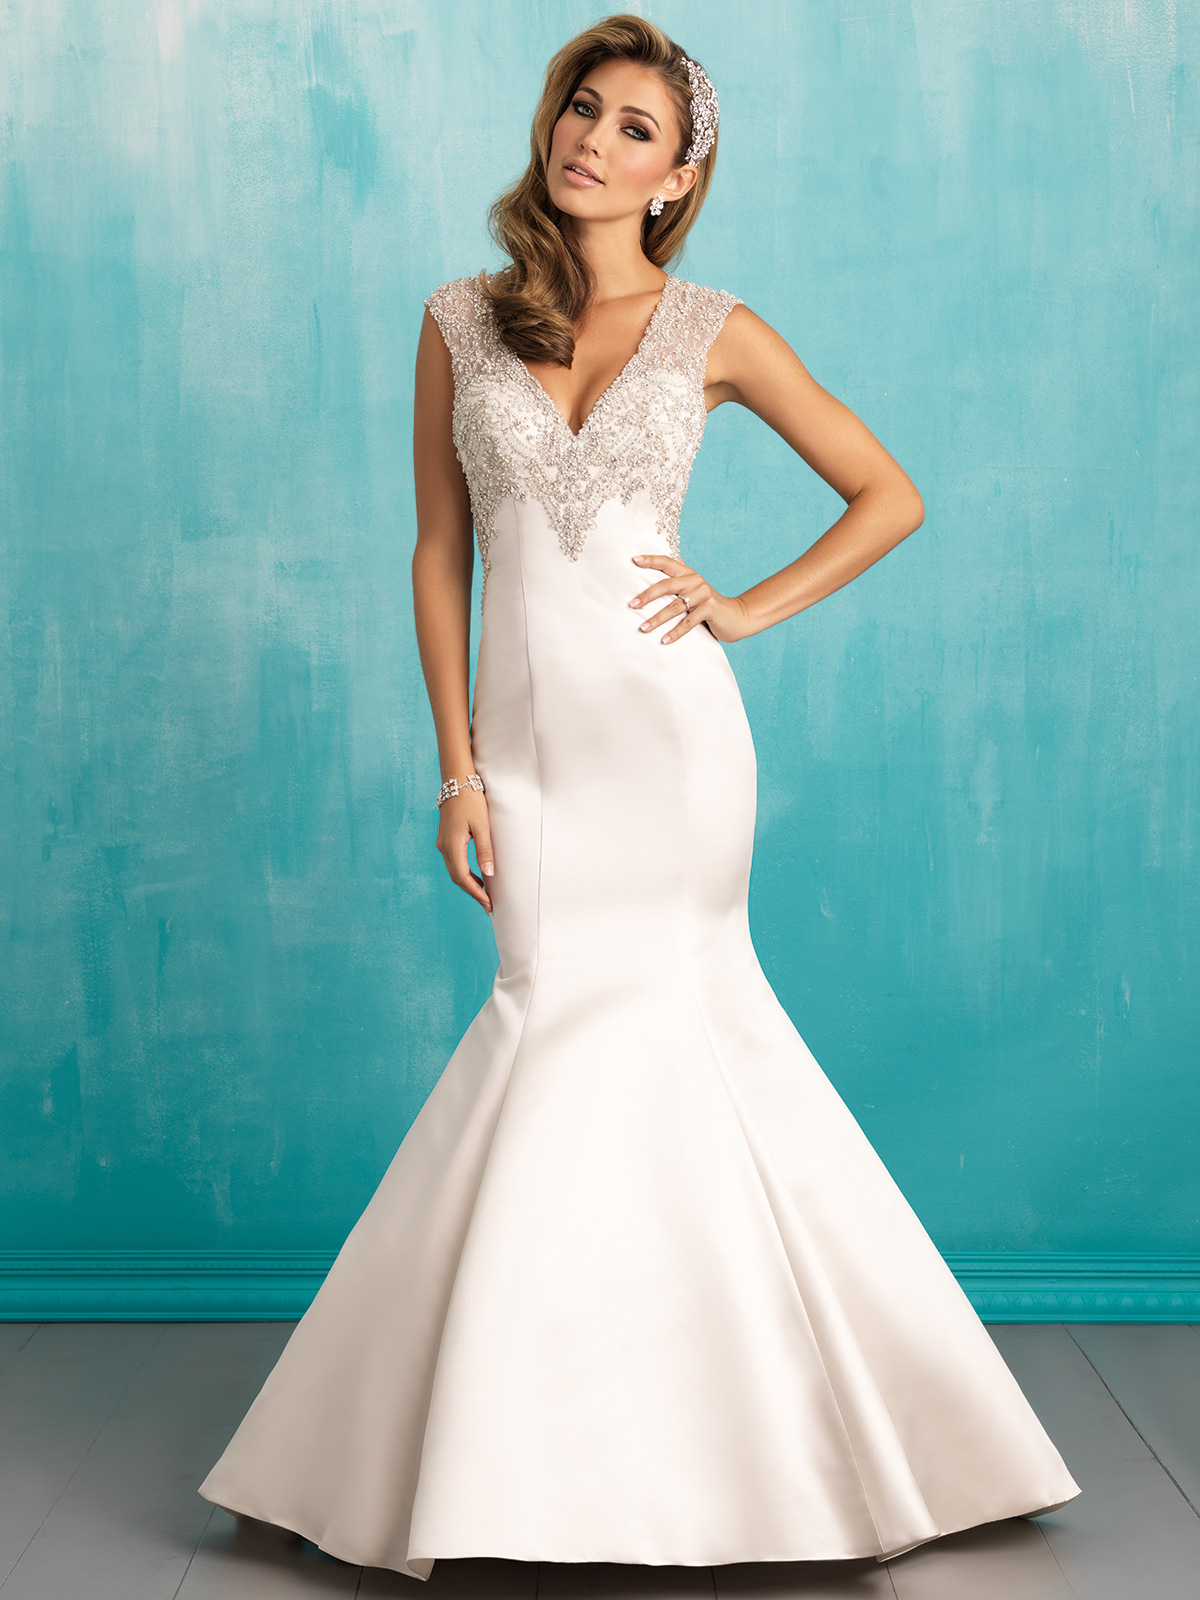 Allure 9306 V-neck Satin Fit And Flare Bridal Dress|DimitraDesigns.com